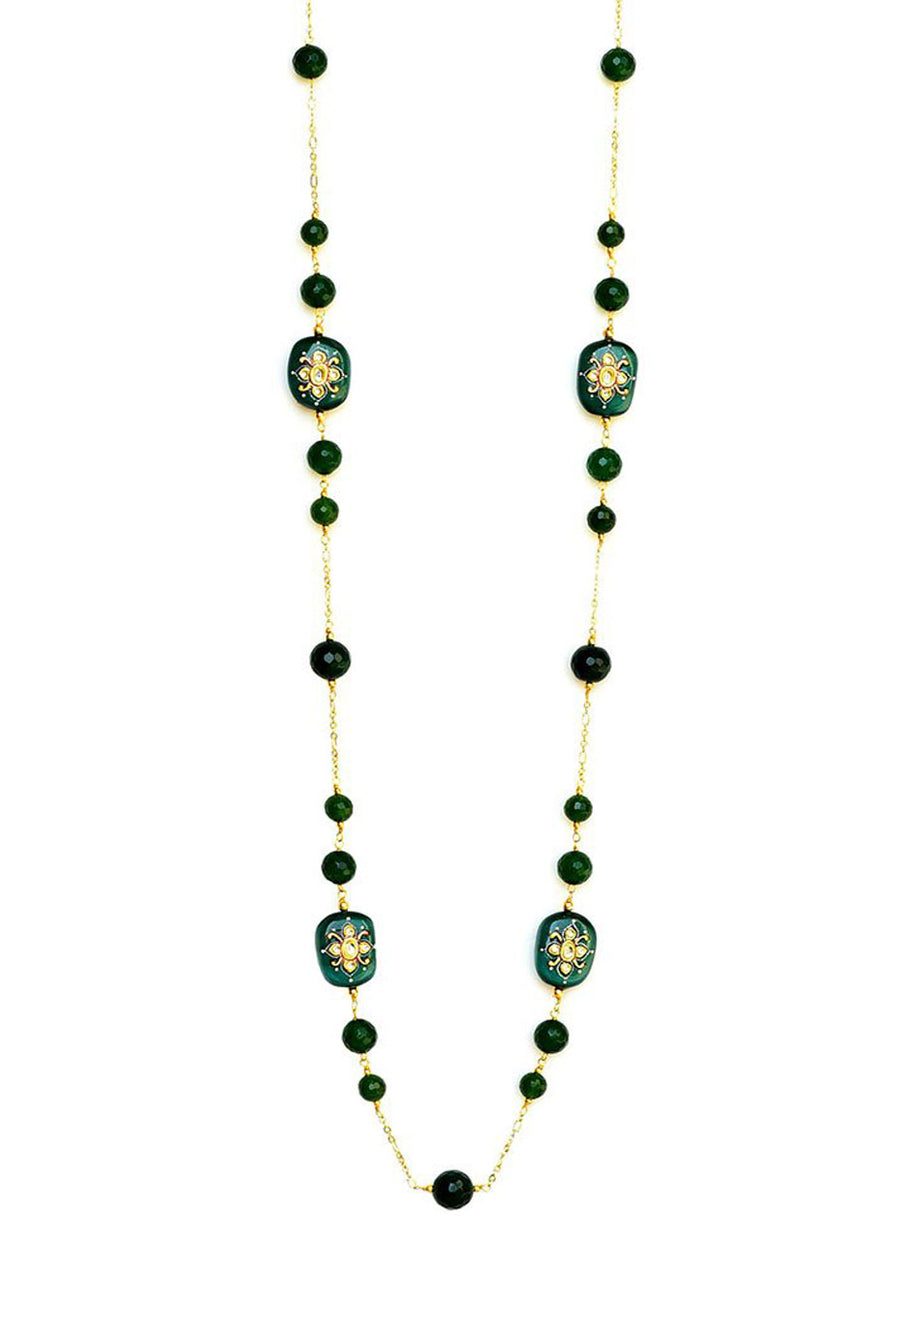 Handcrafted Embossed Bead Necklace Green Finish